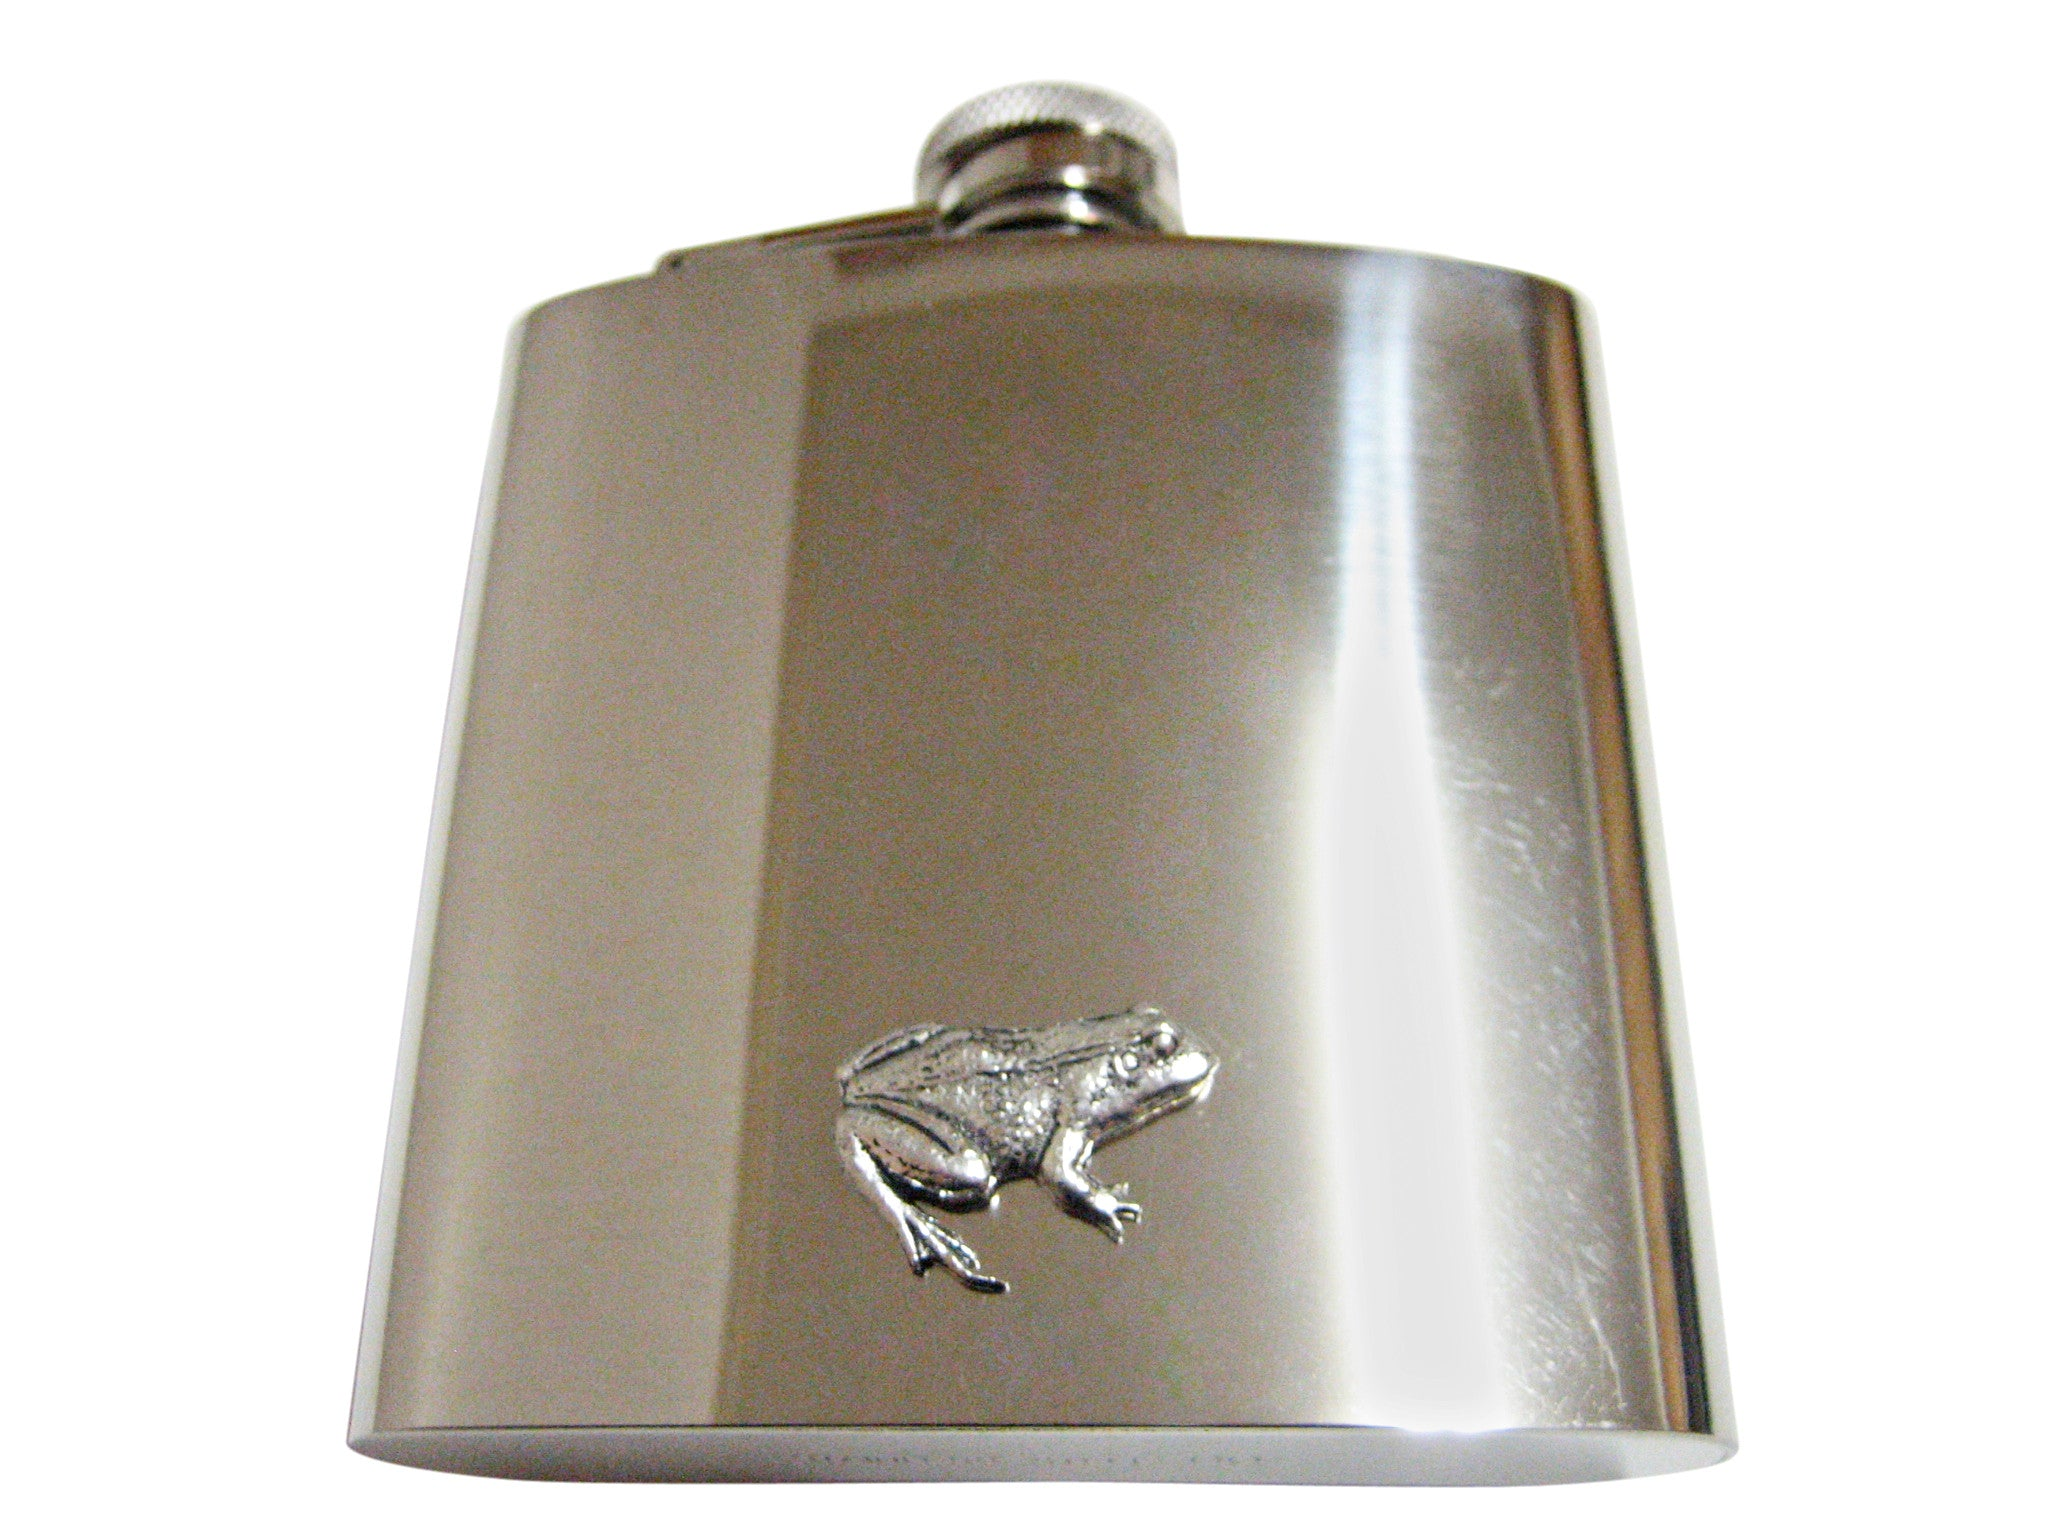 Frog 6 Oz. Stainless Steel Flask